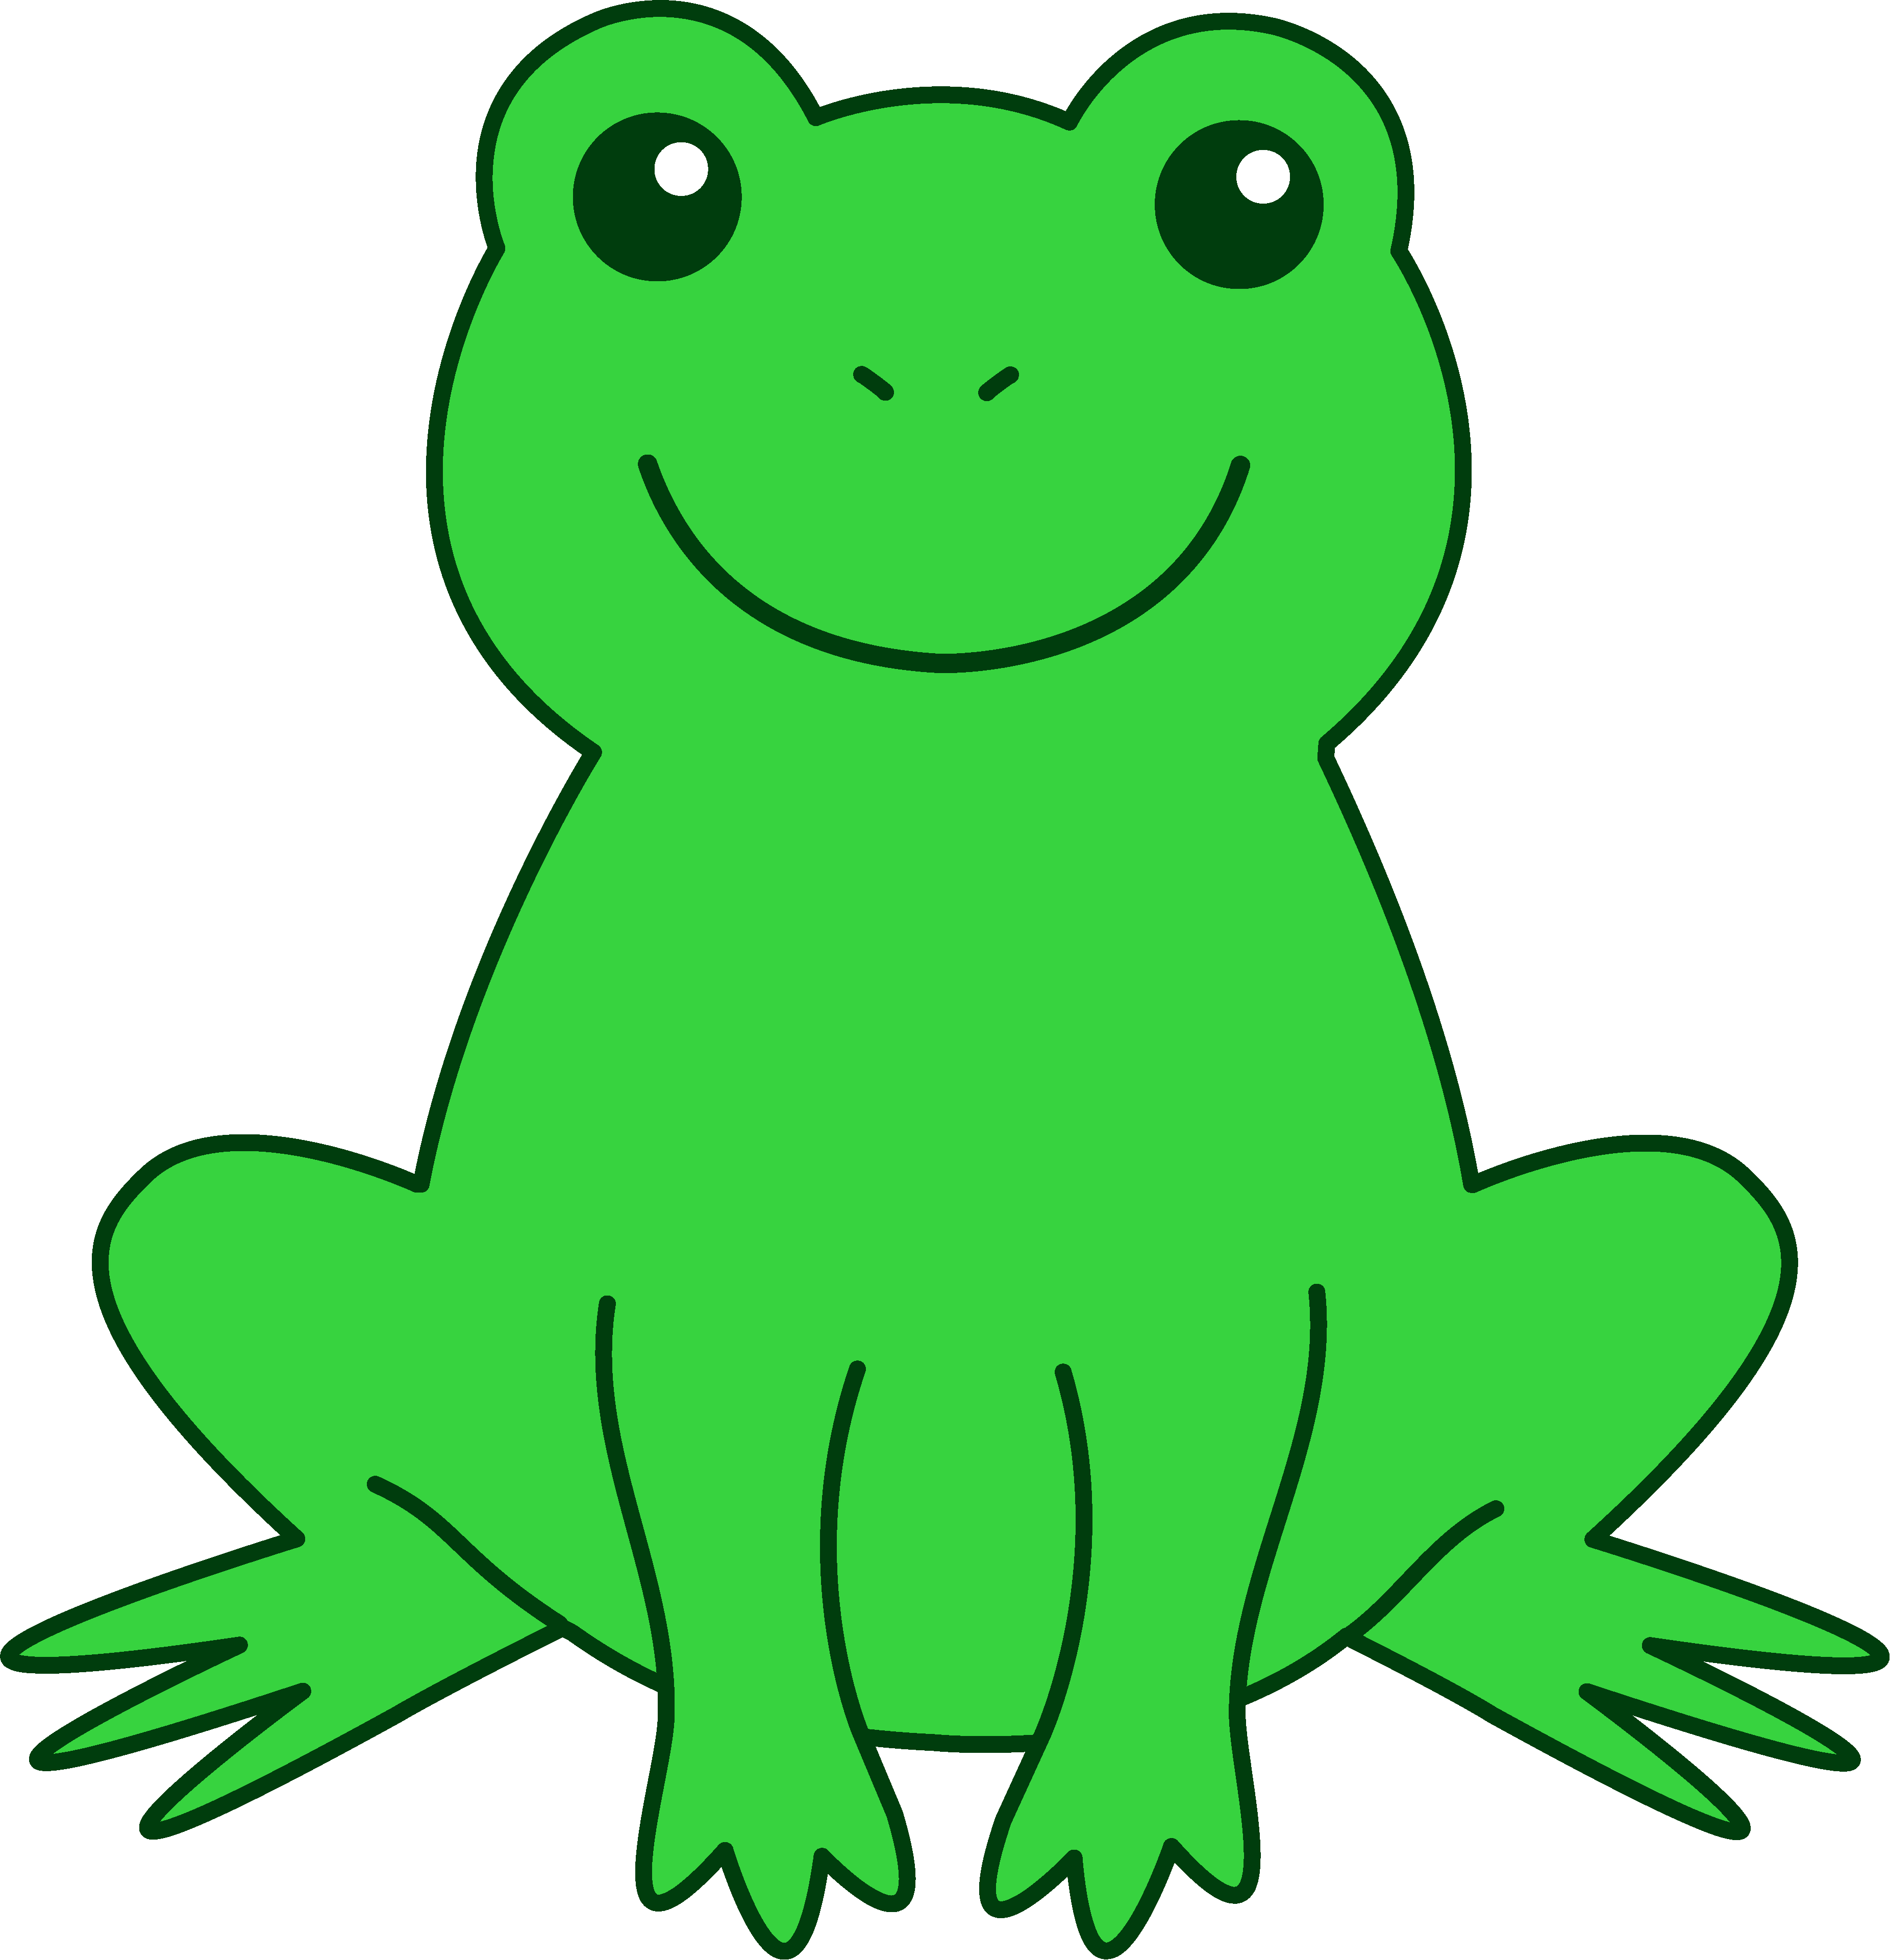 Frog crown clipart picture royalty free download The Lego Movie Videogame is an action-adventure game developed by TT ... picture royalty free download